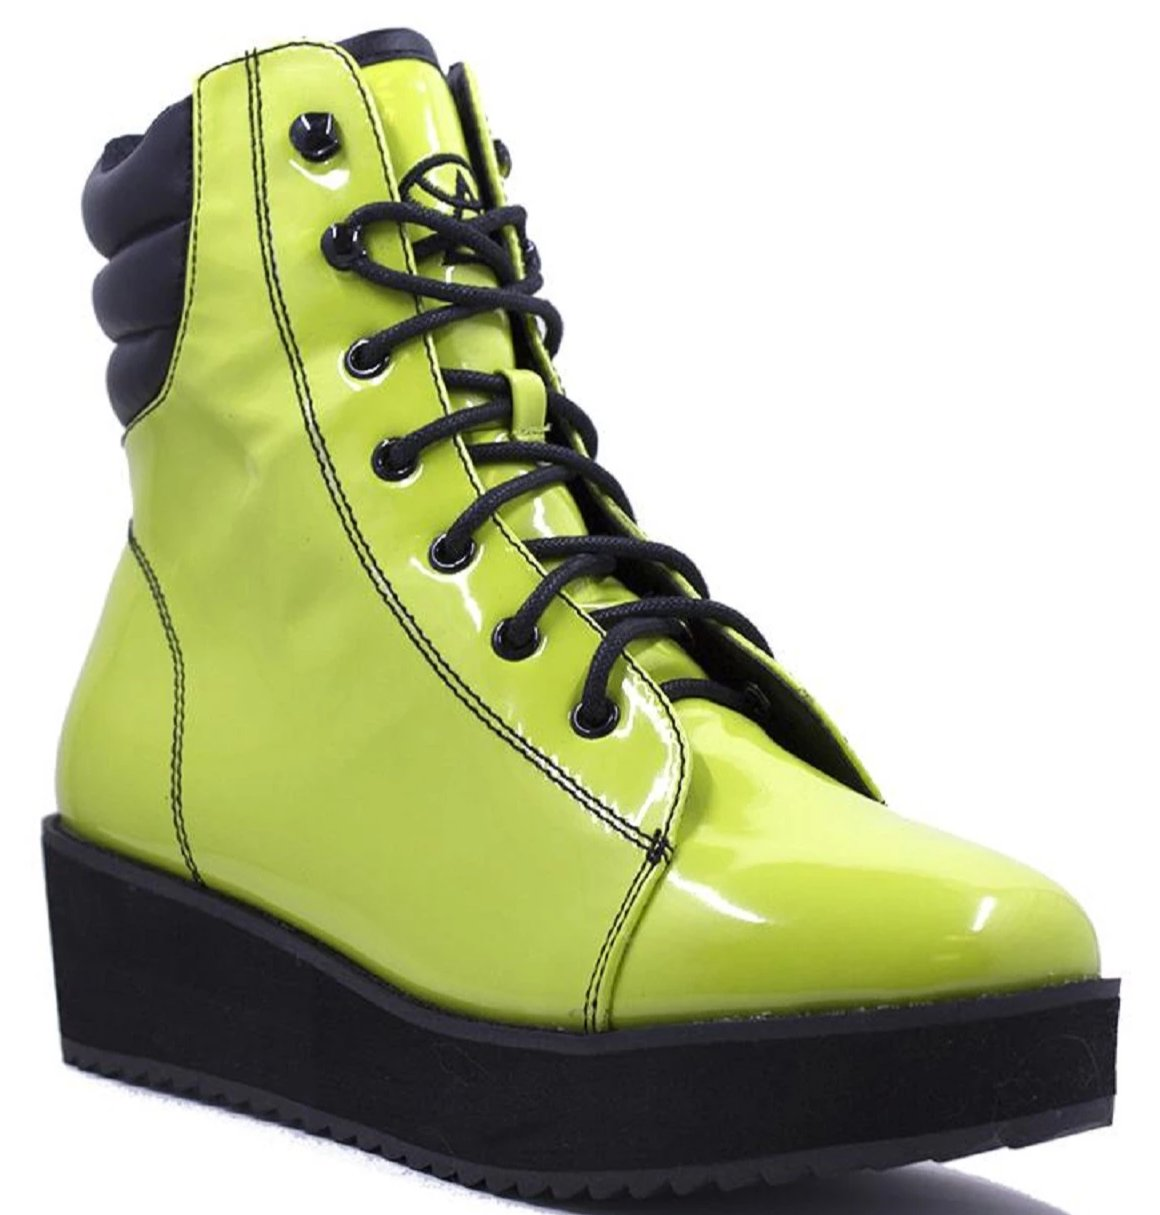 Strangecvlt Y.R.U Darby Monster Lime Green Patent Leather Fashion Combat Boots